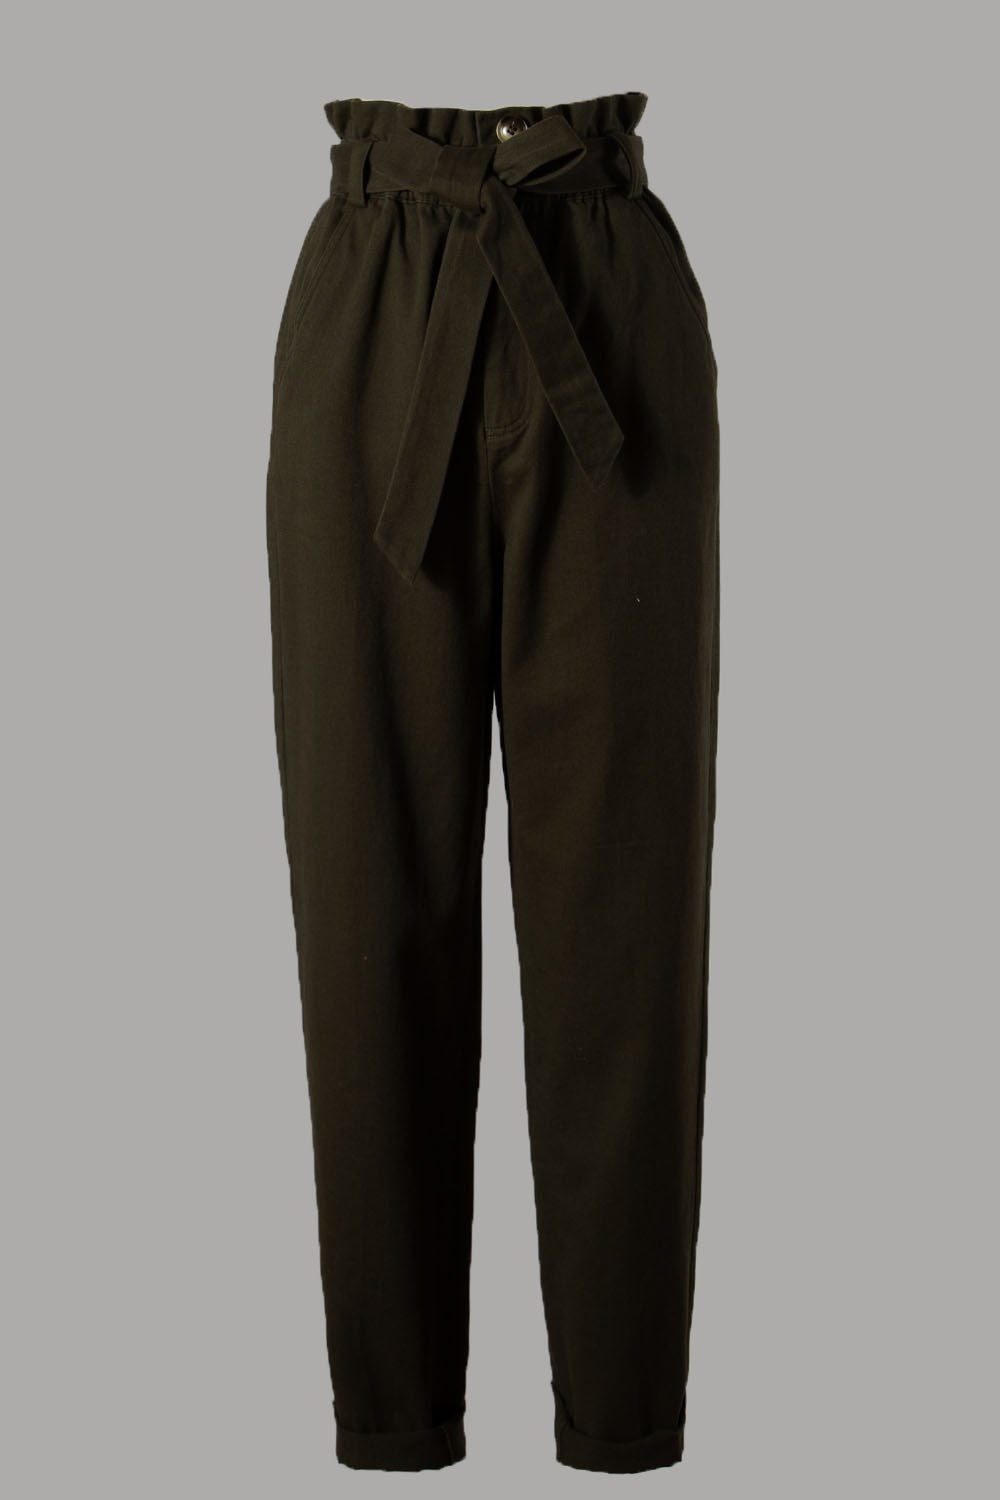 PAPER BAG BELTED WOVEN PANTS